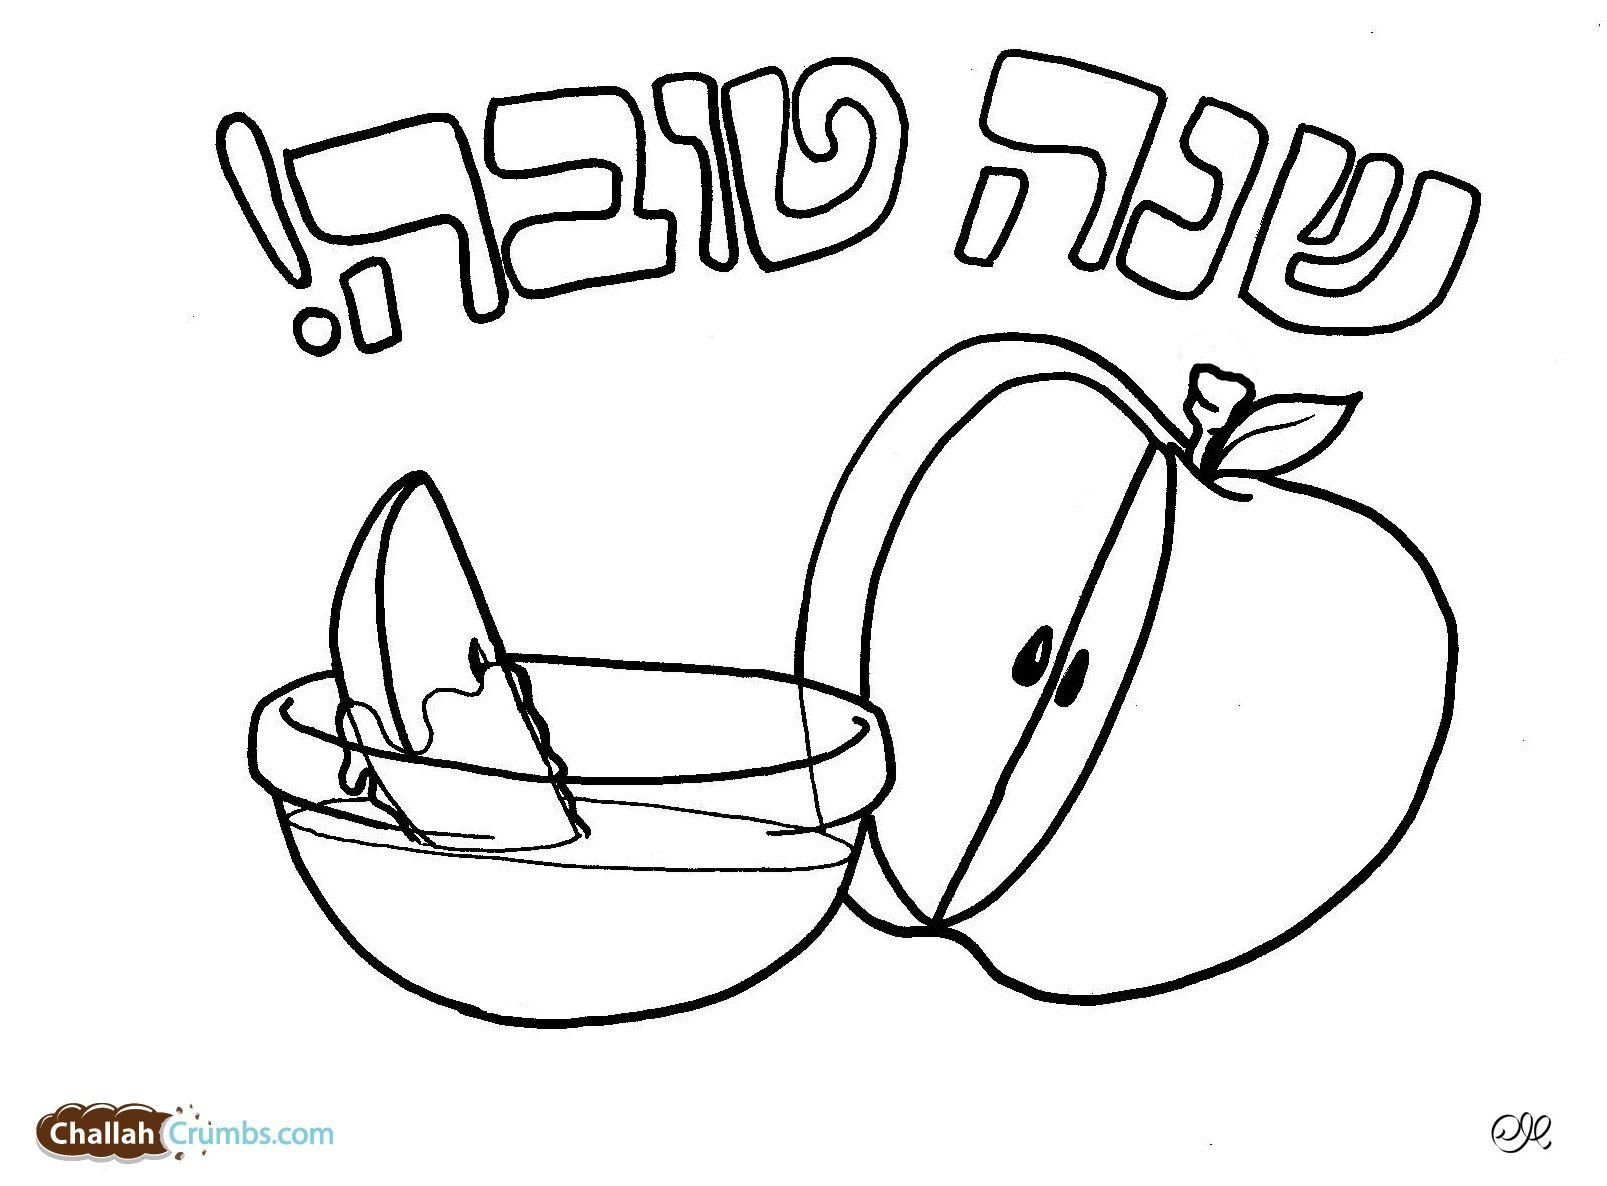 Jewish Holidays Archives - Page 3 of 4 - Challah Crumbs | coloring ...